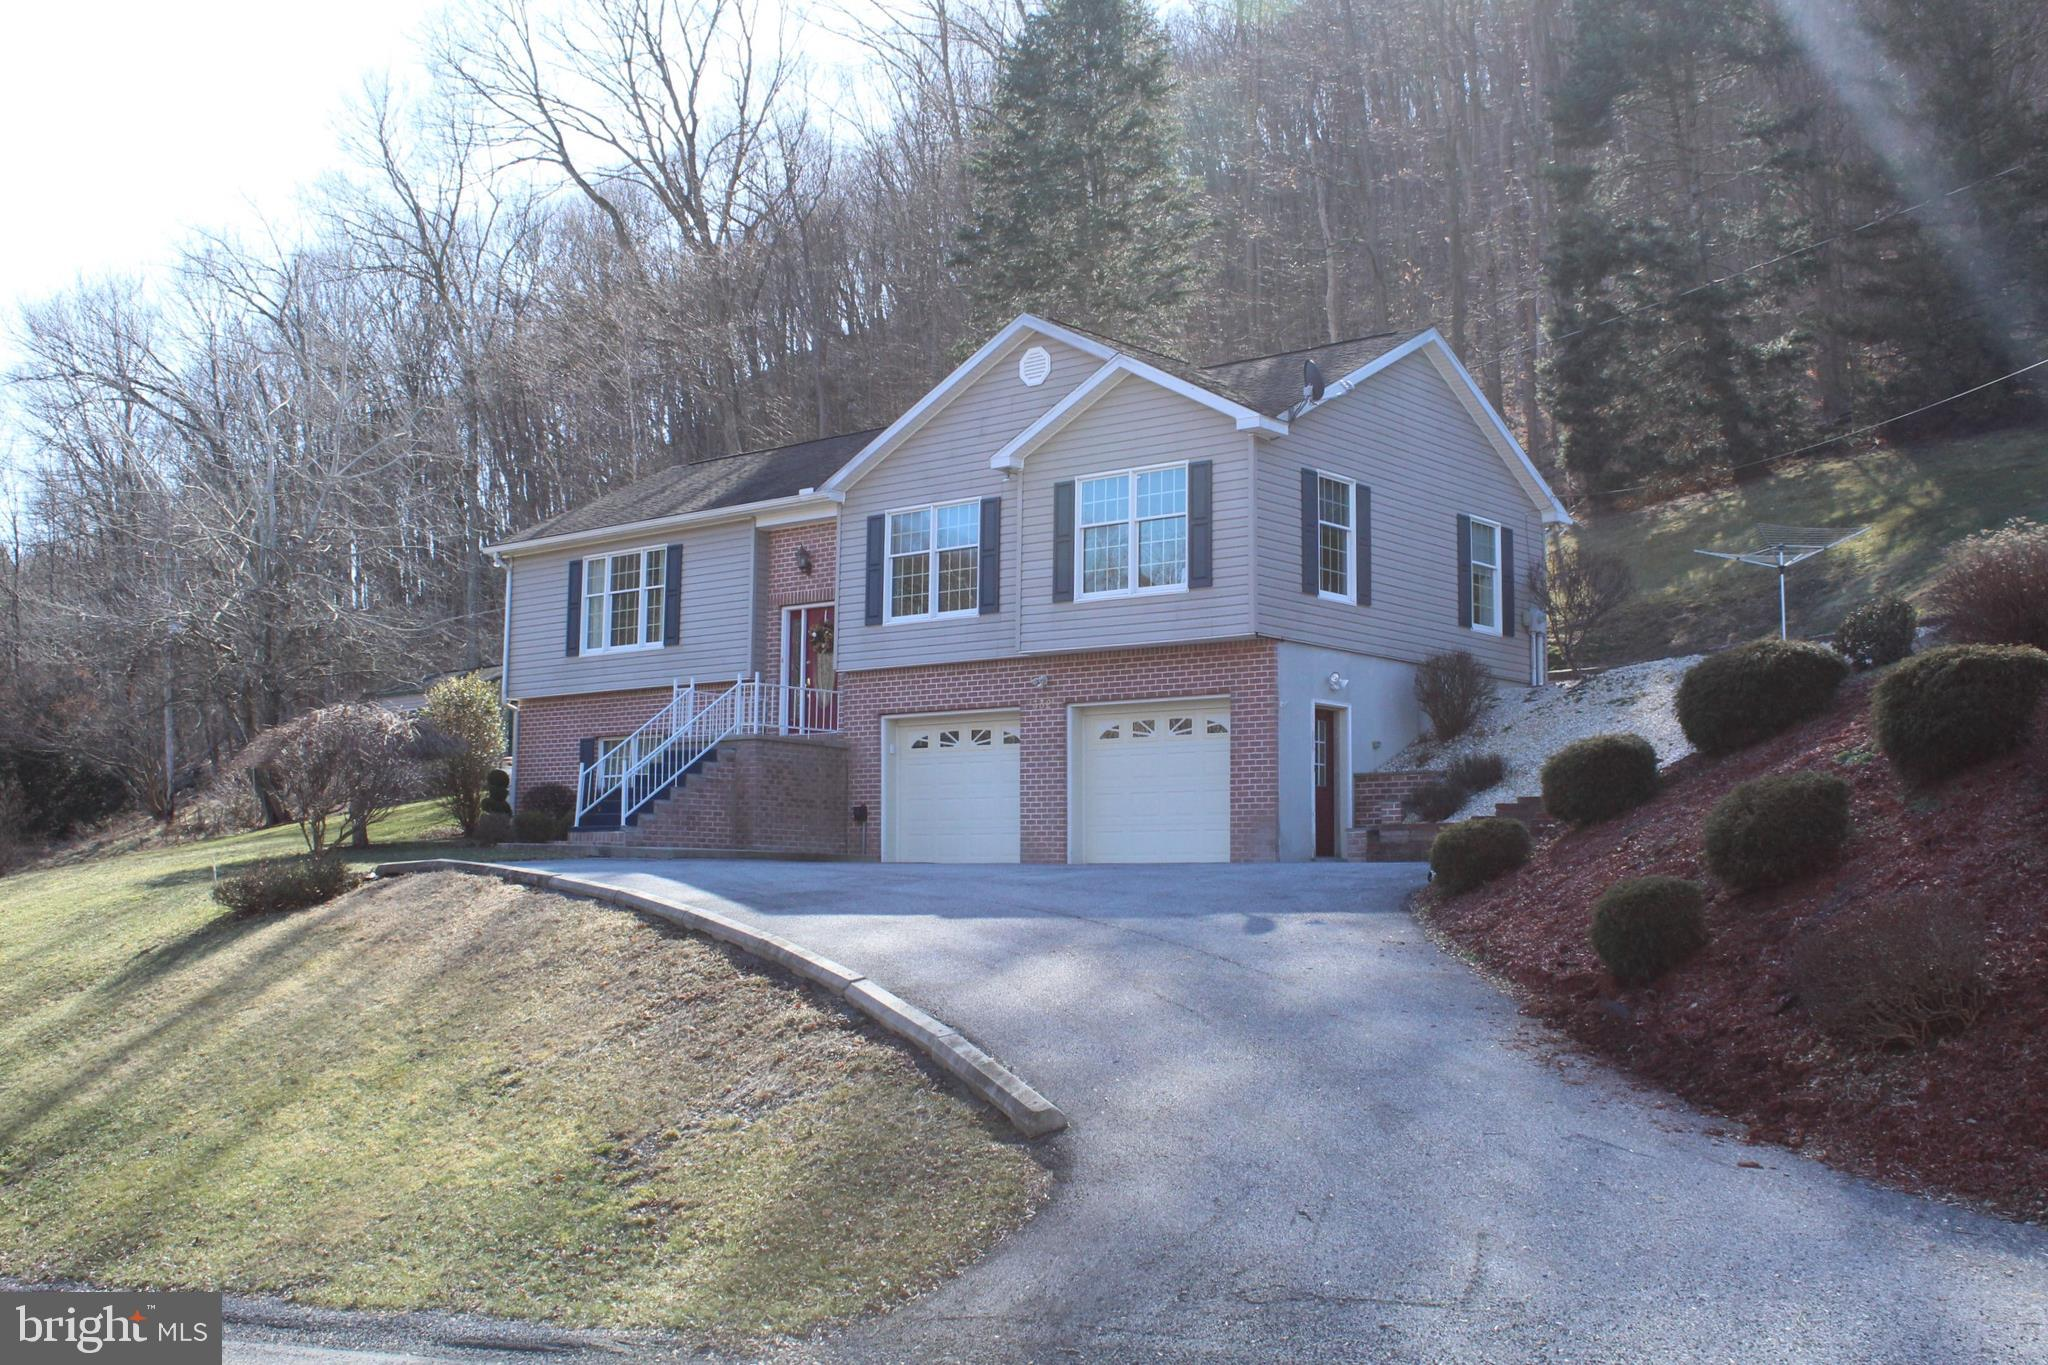 332 Rest Home Road, Manns Choice, PA 15550